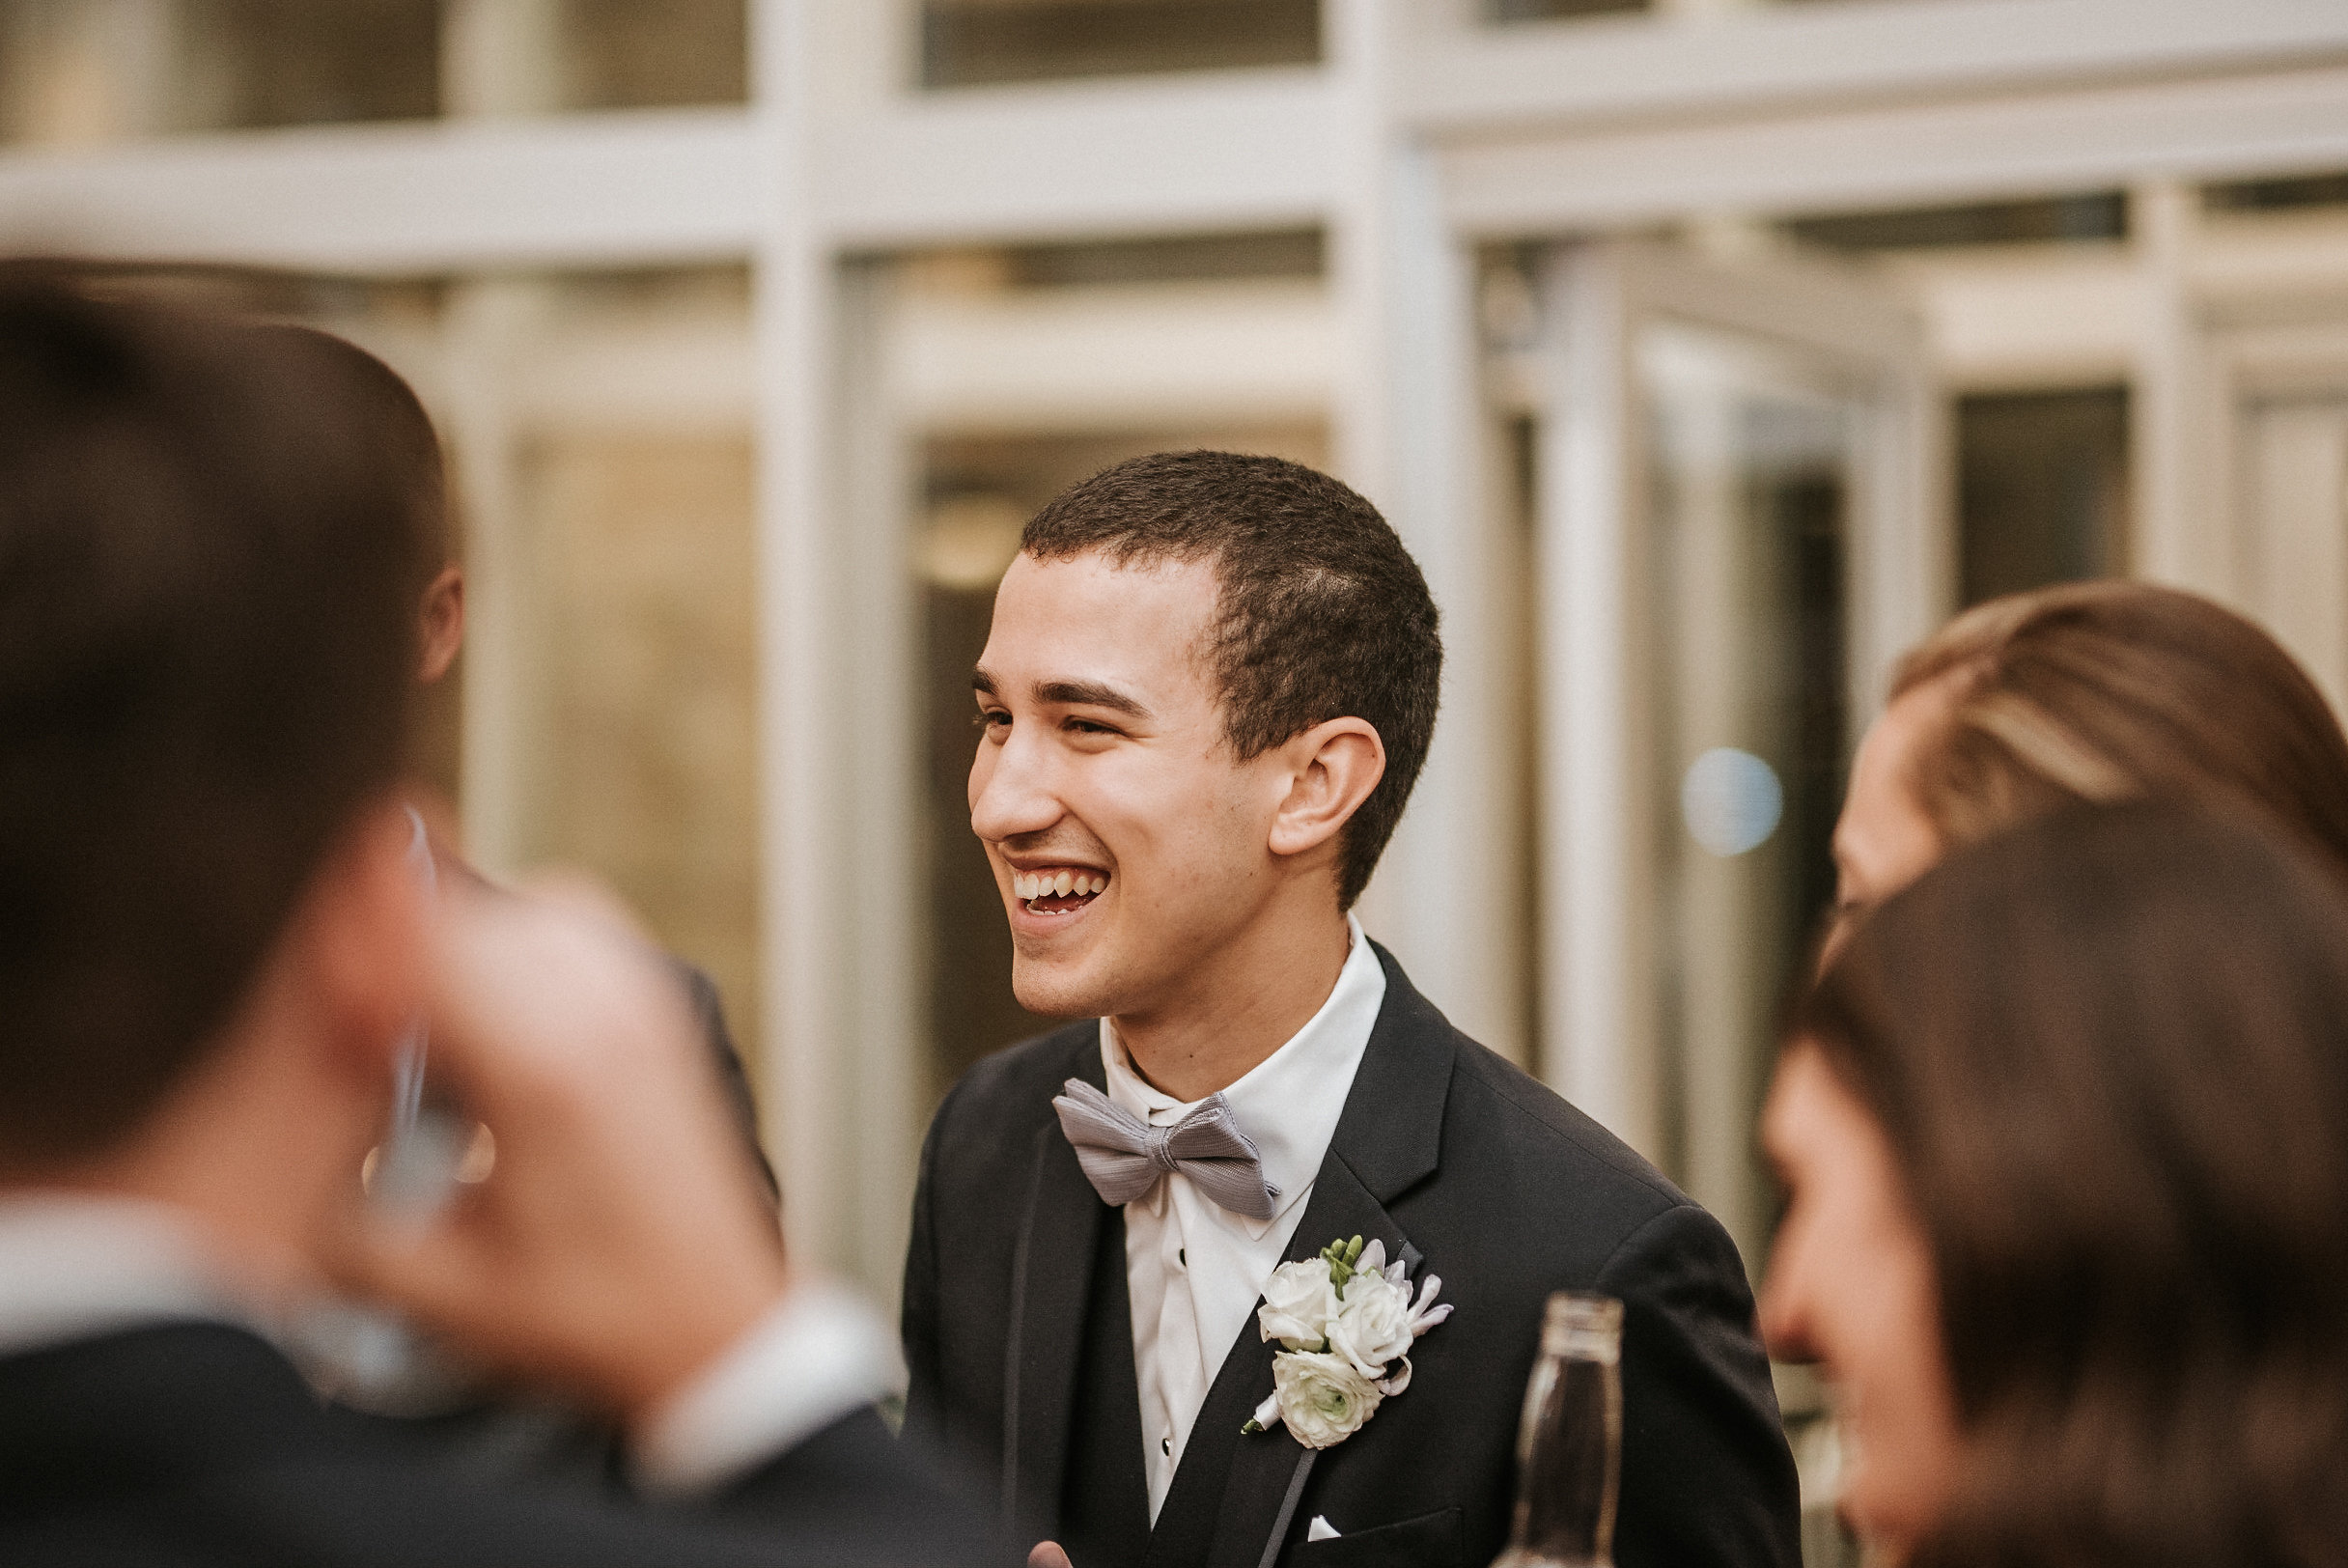 Groom laughing at reception